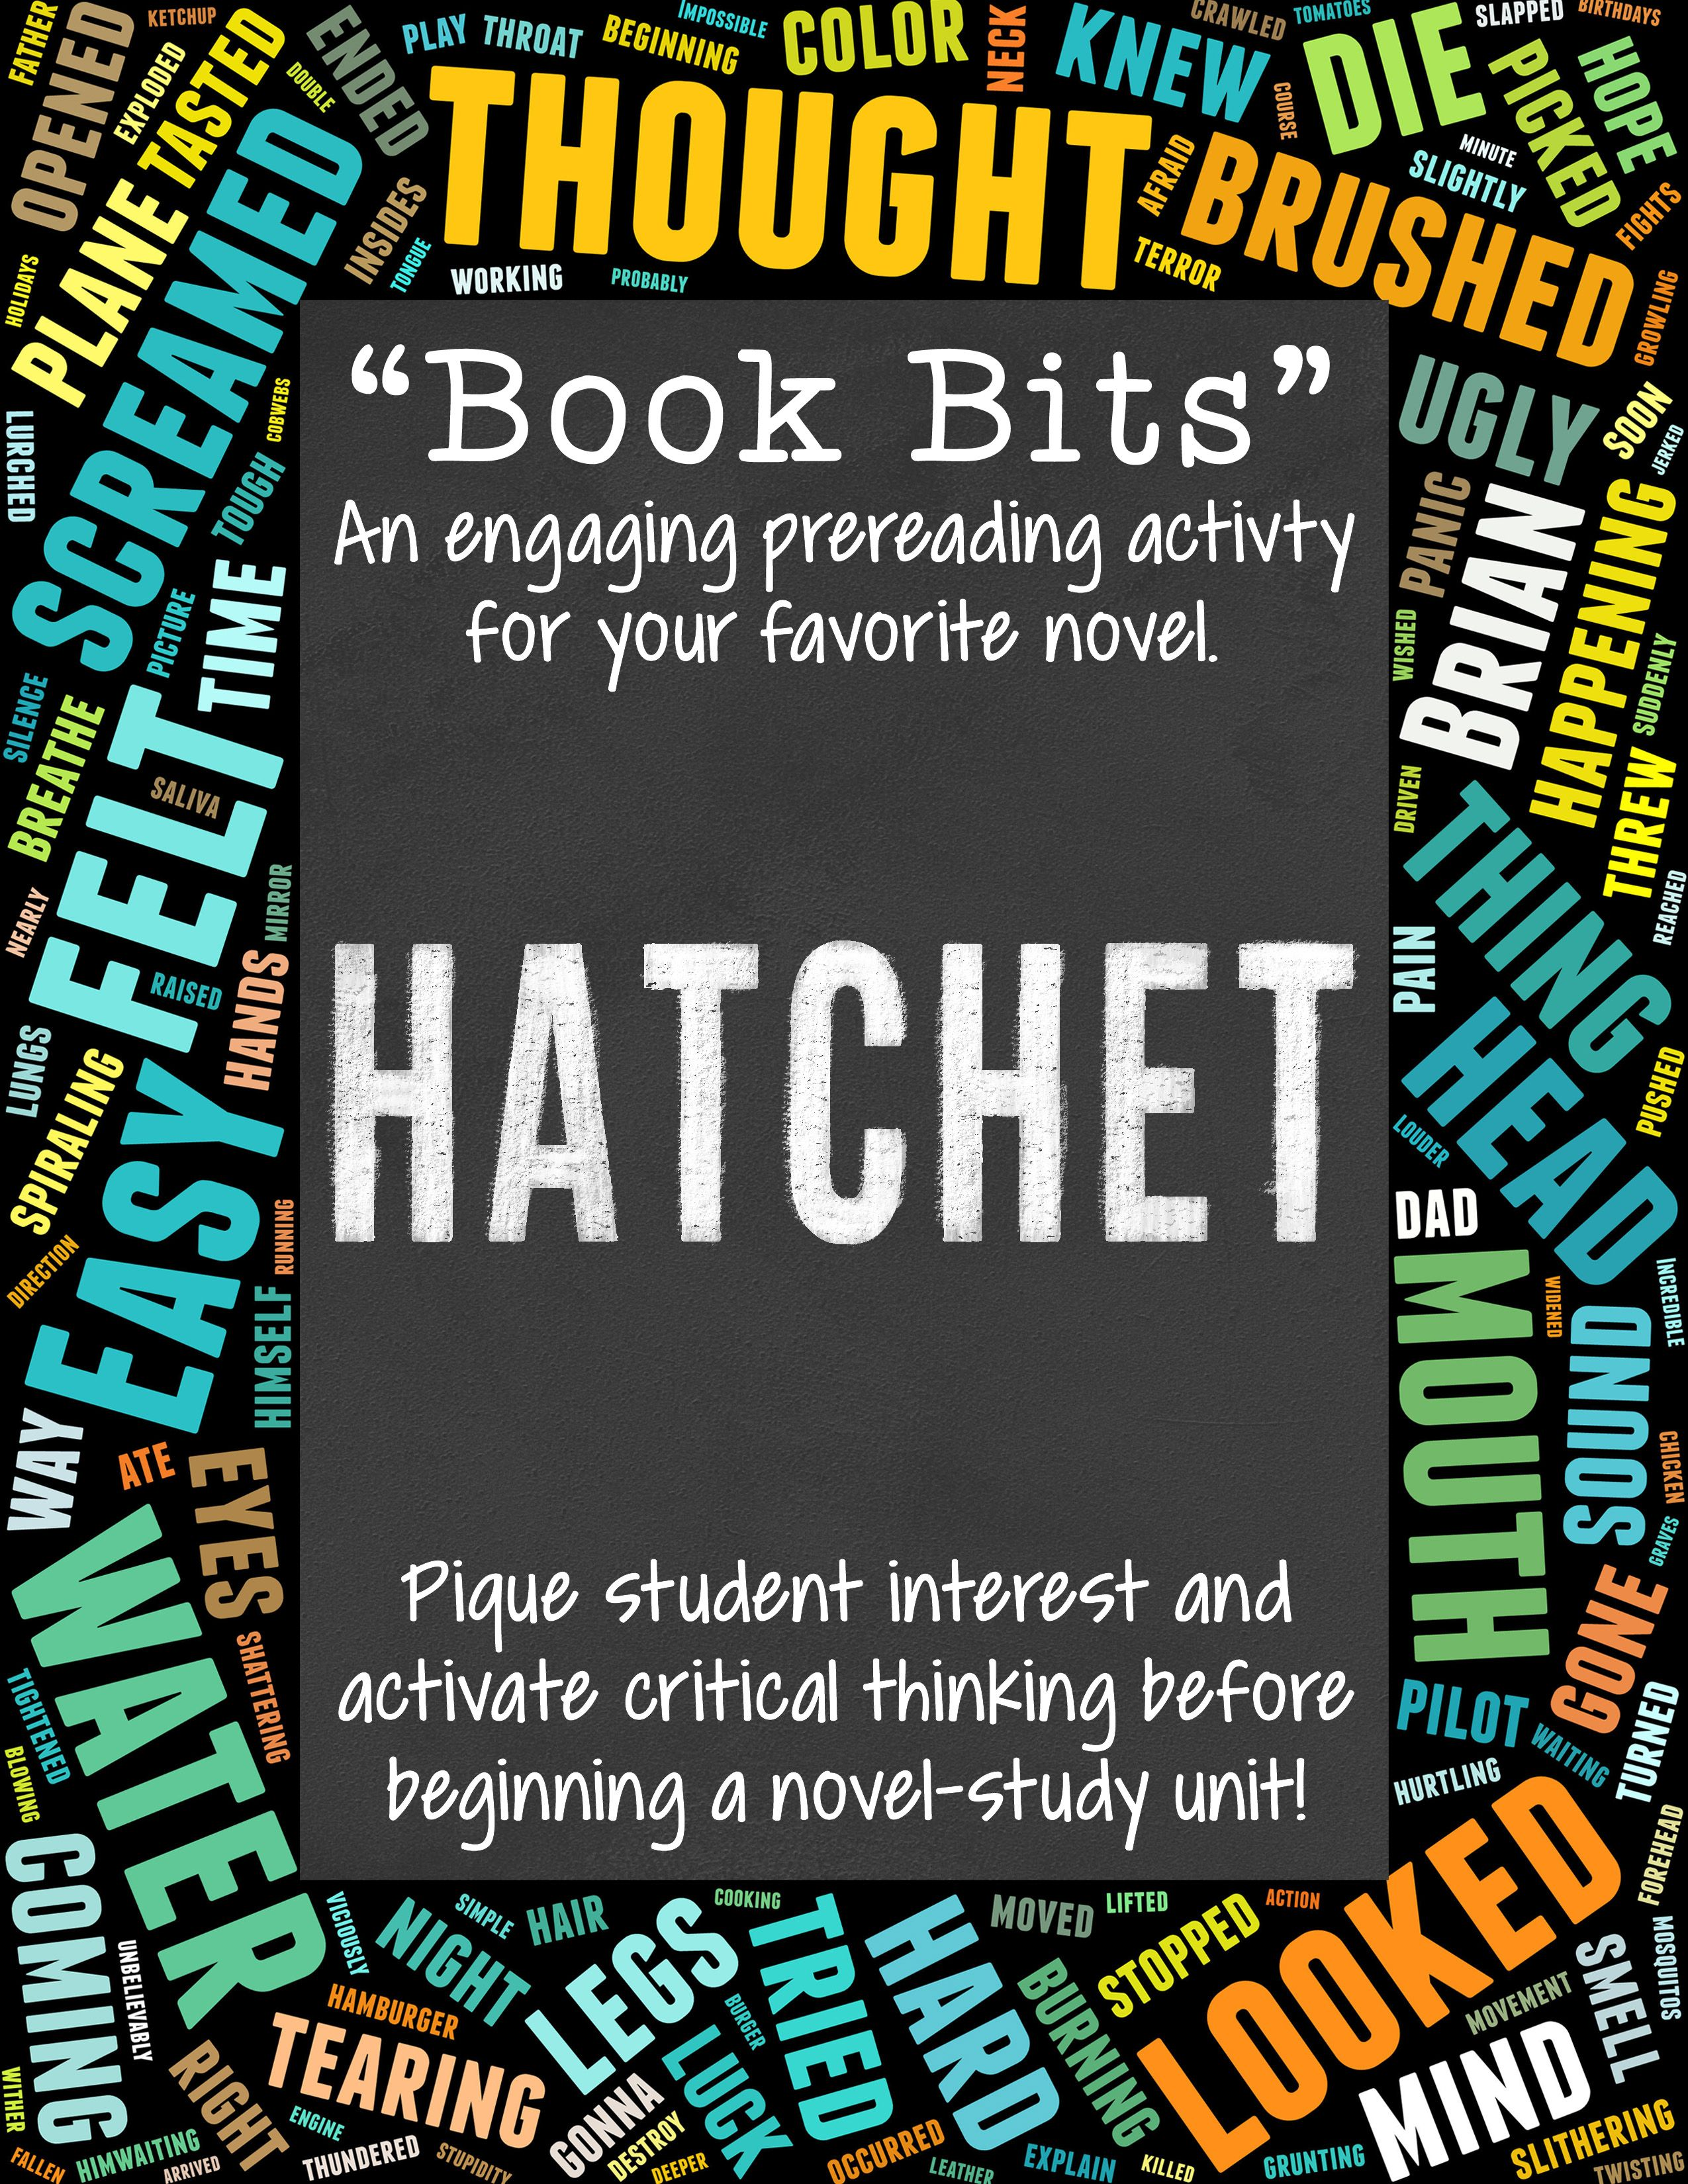 Book Bits A Fun Pre Reading Activity For Hatchet